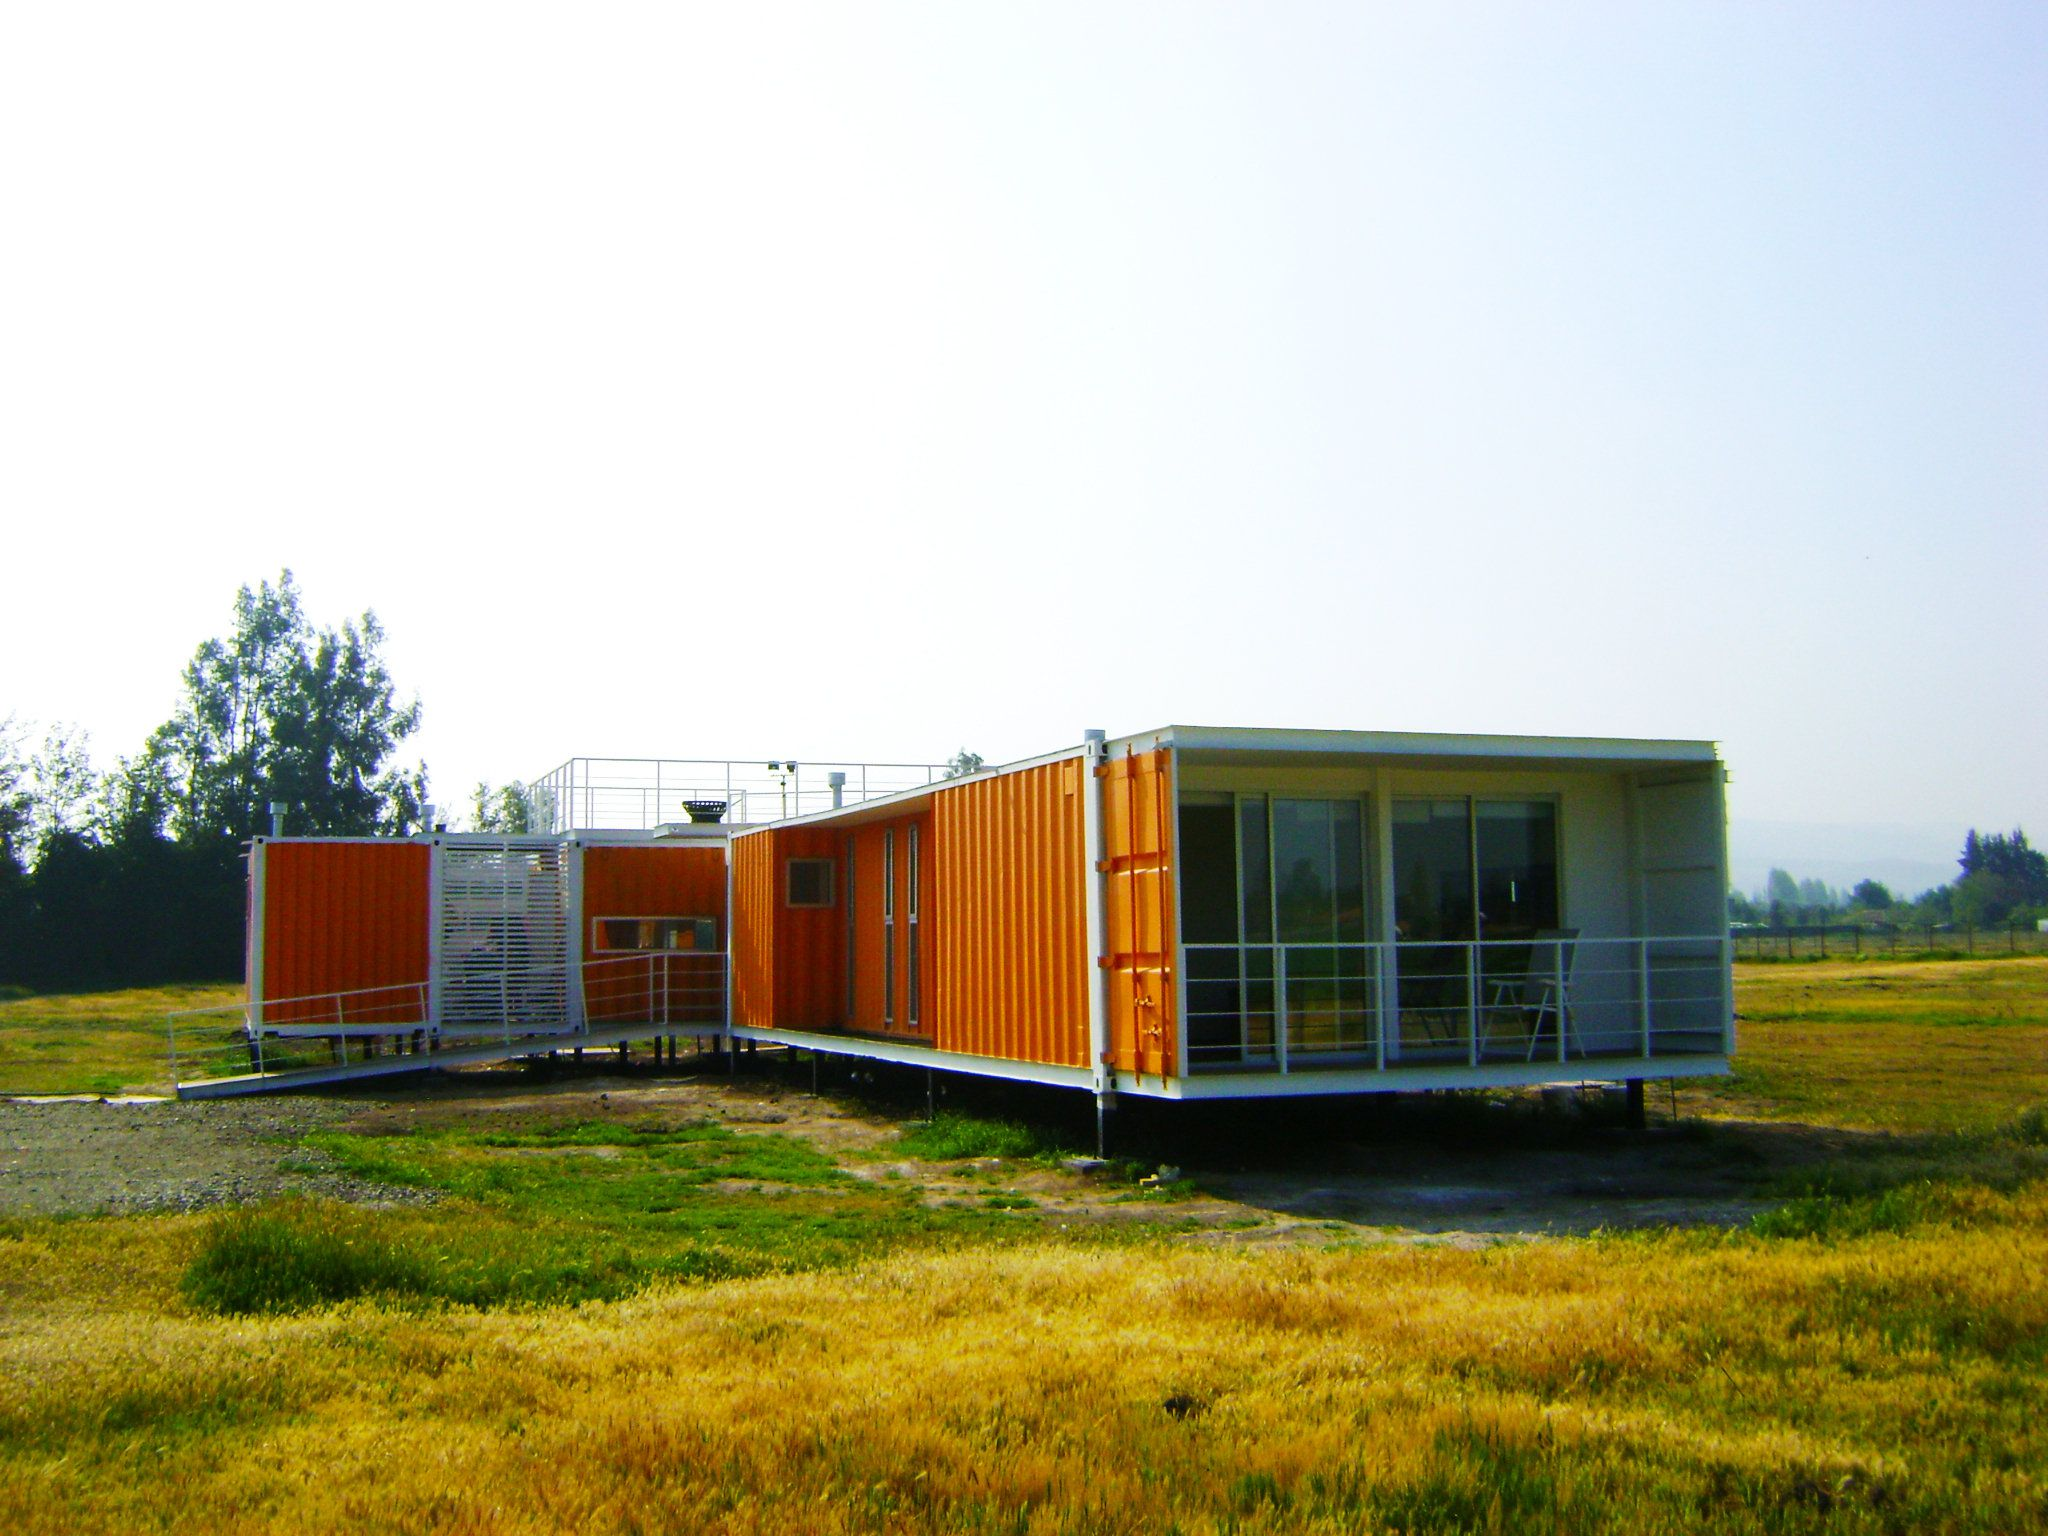 Comfy Balcony for Cargo Container Homes with Orange Wall and Flat Roof facing Green Grass Area